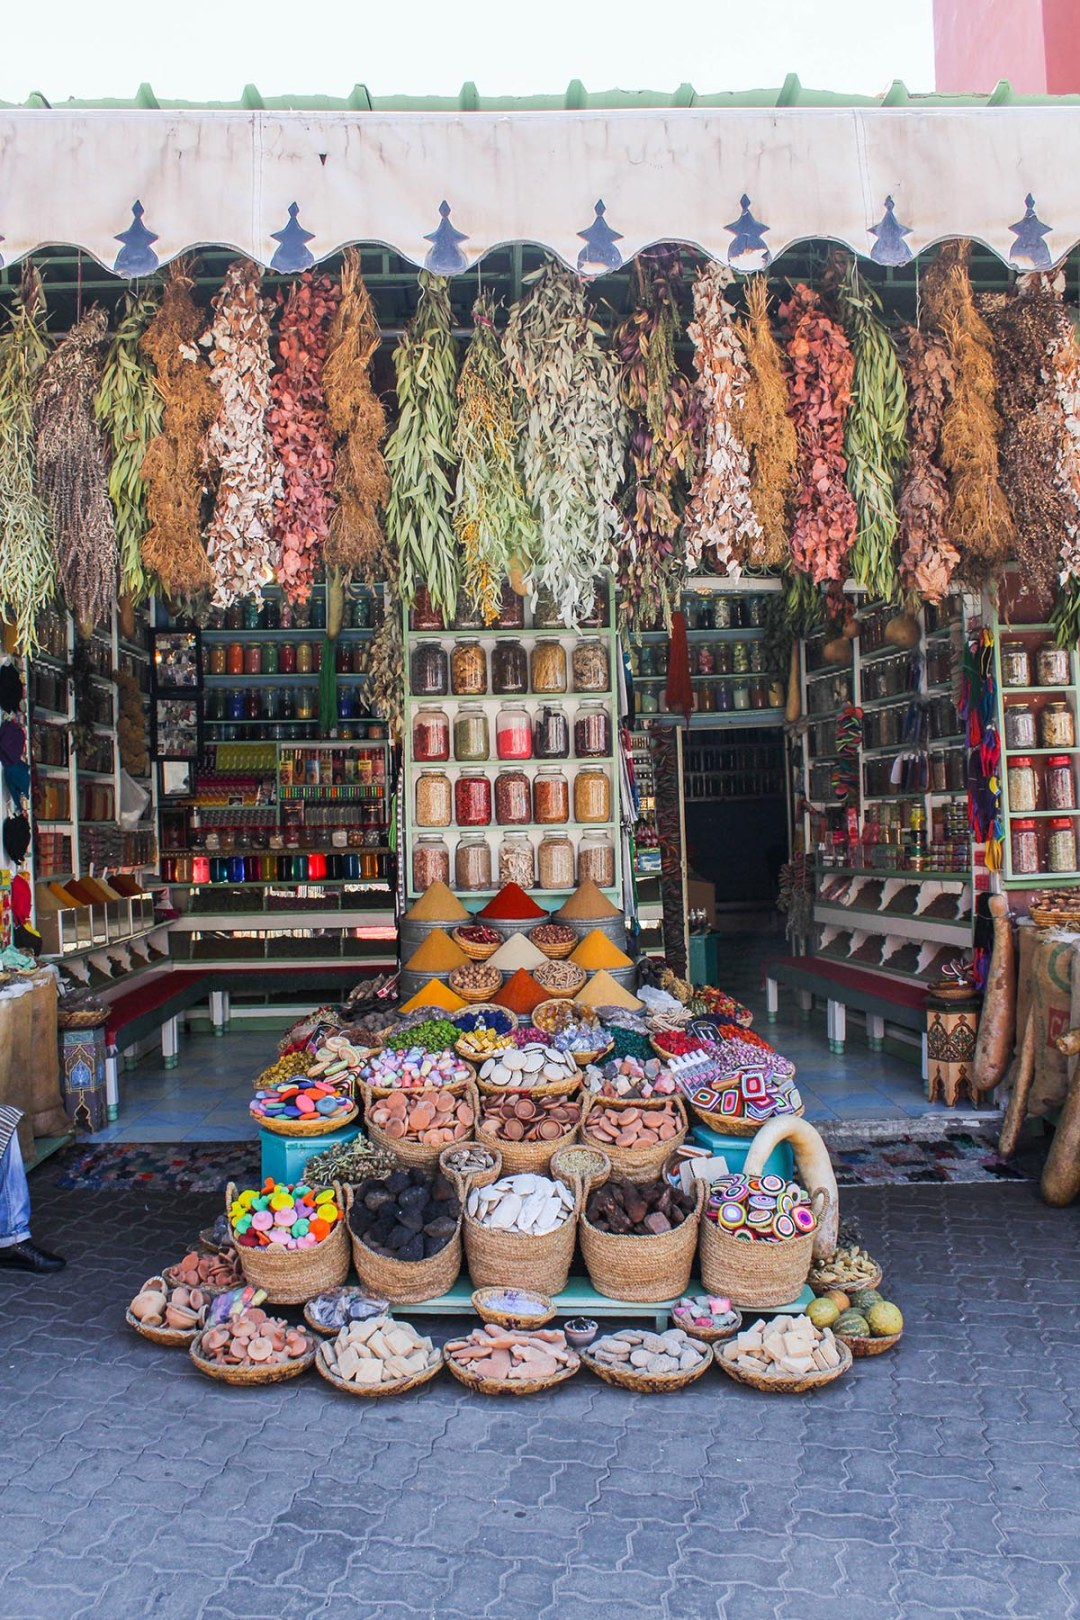 Where are the best places to take photos in Morocco? Look no further because with #magicalmorocco I show you the most instagrammable places in Marrakech.